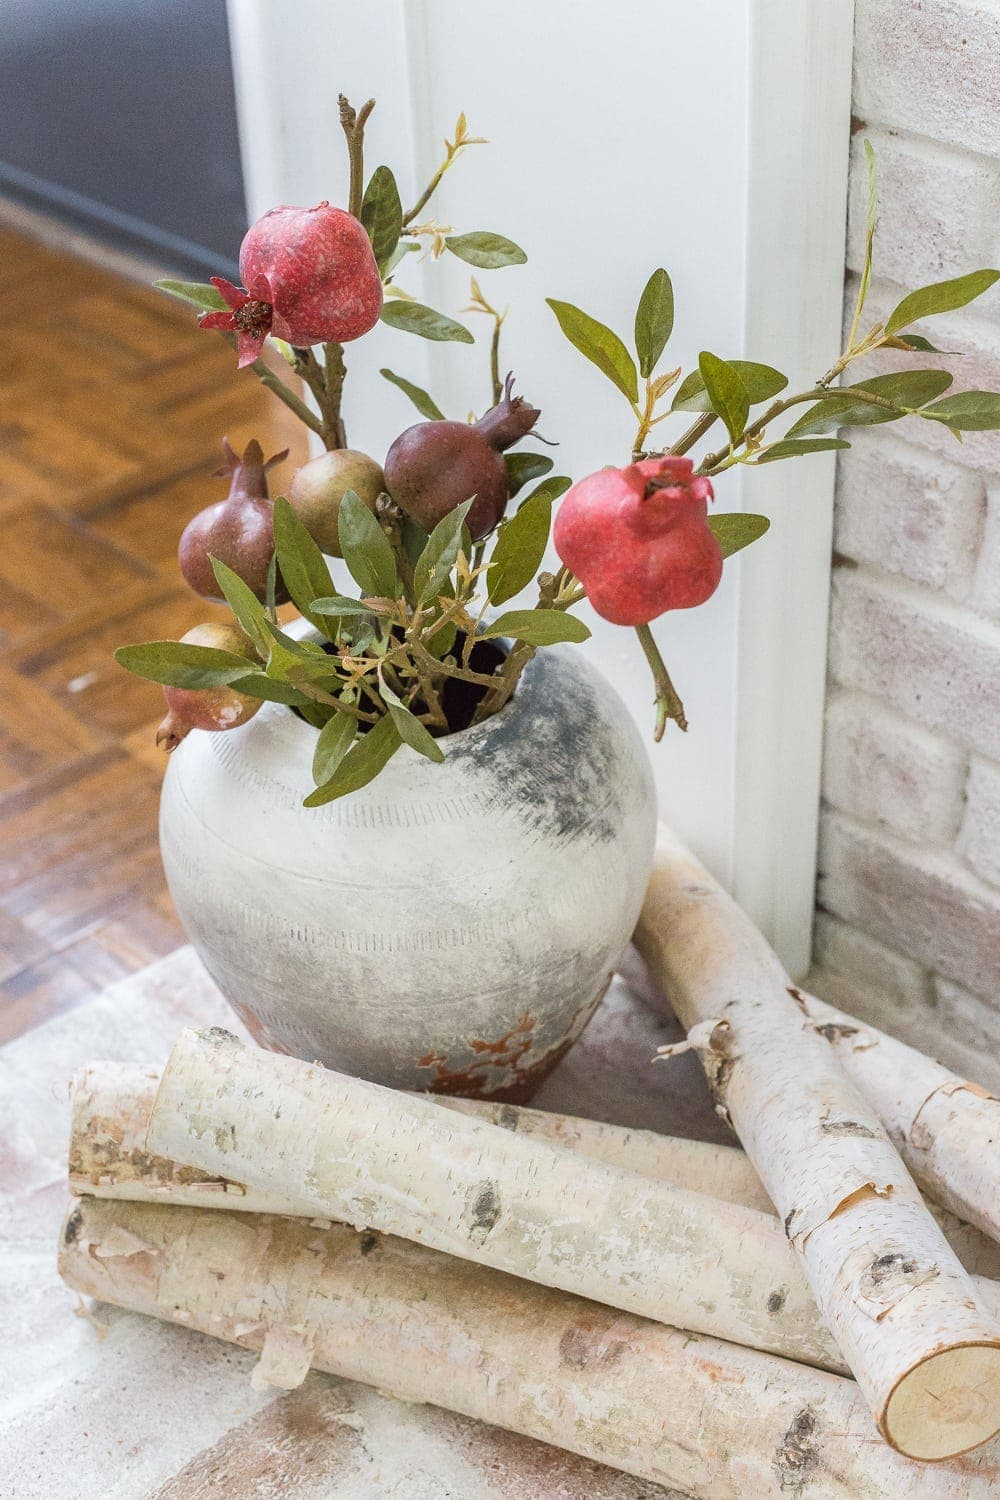 Add cut logs to your heart for added coziness for fall decor